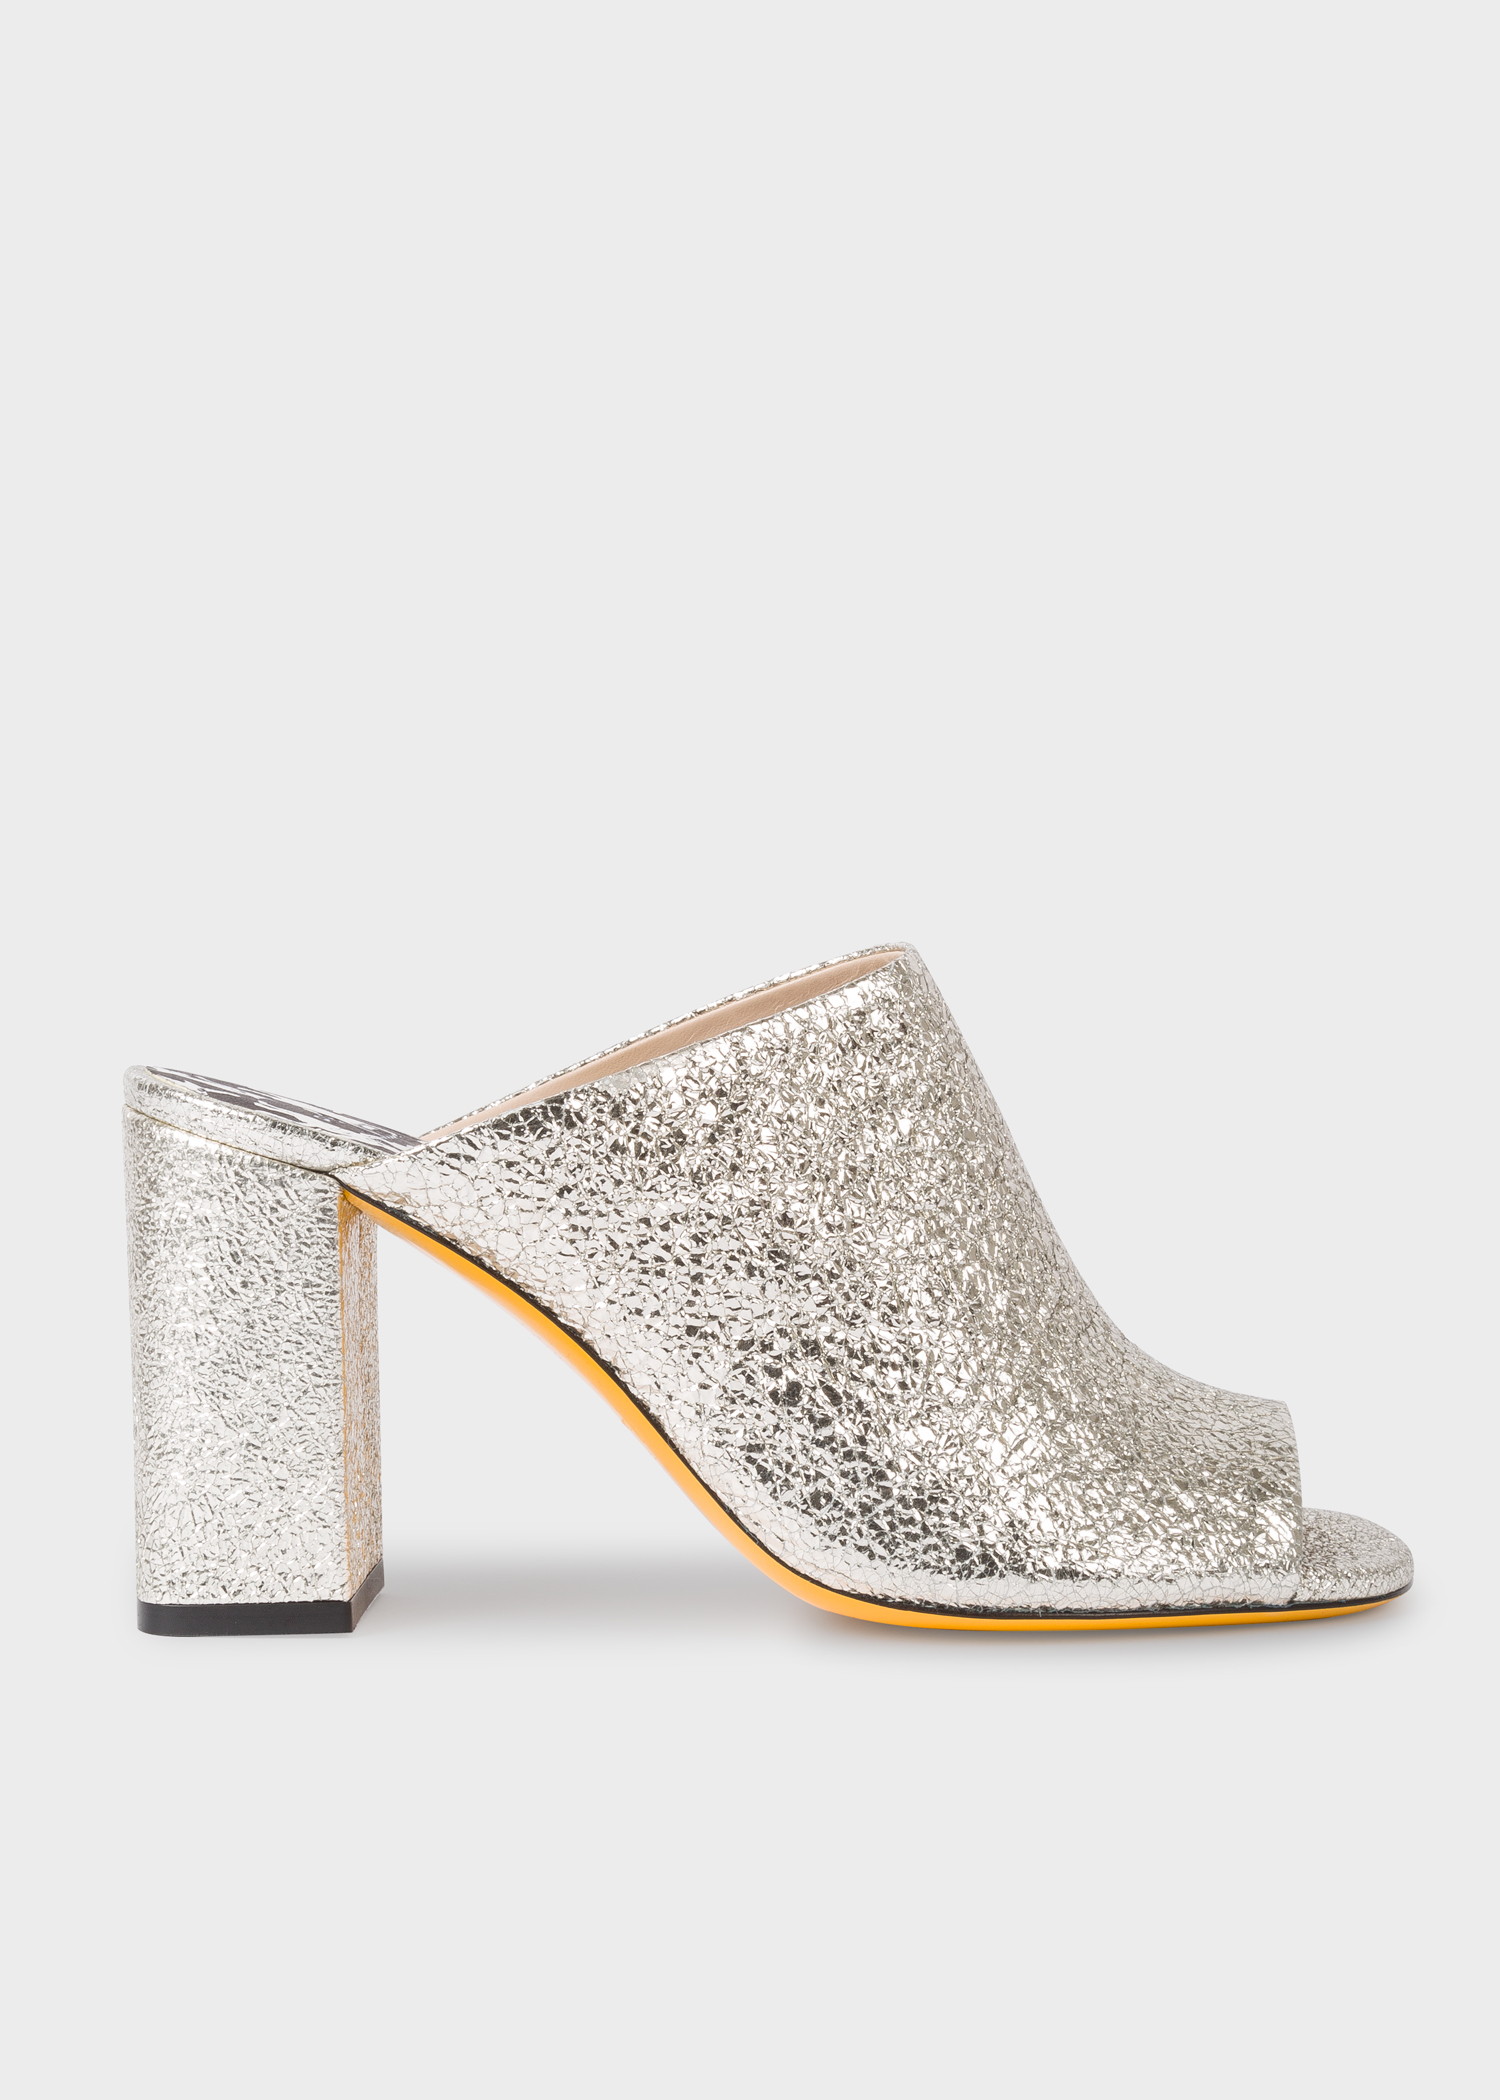 a45d31aec577 Side view - Women's Silver Glitter Heeled Mules Paul Smith